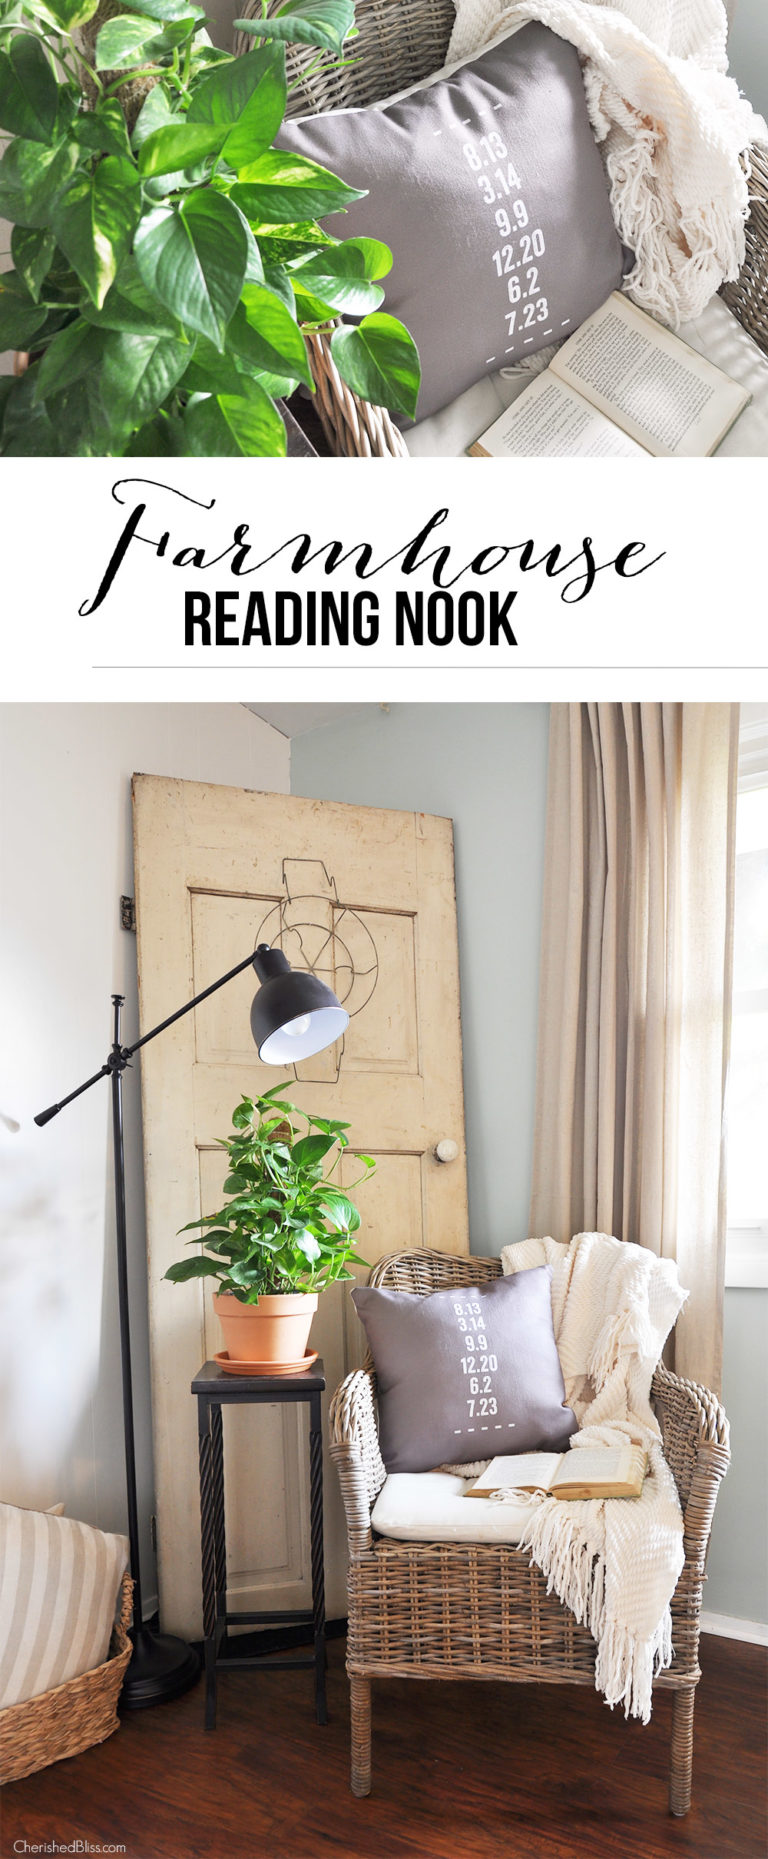 Farmhouse Reading Nook